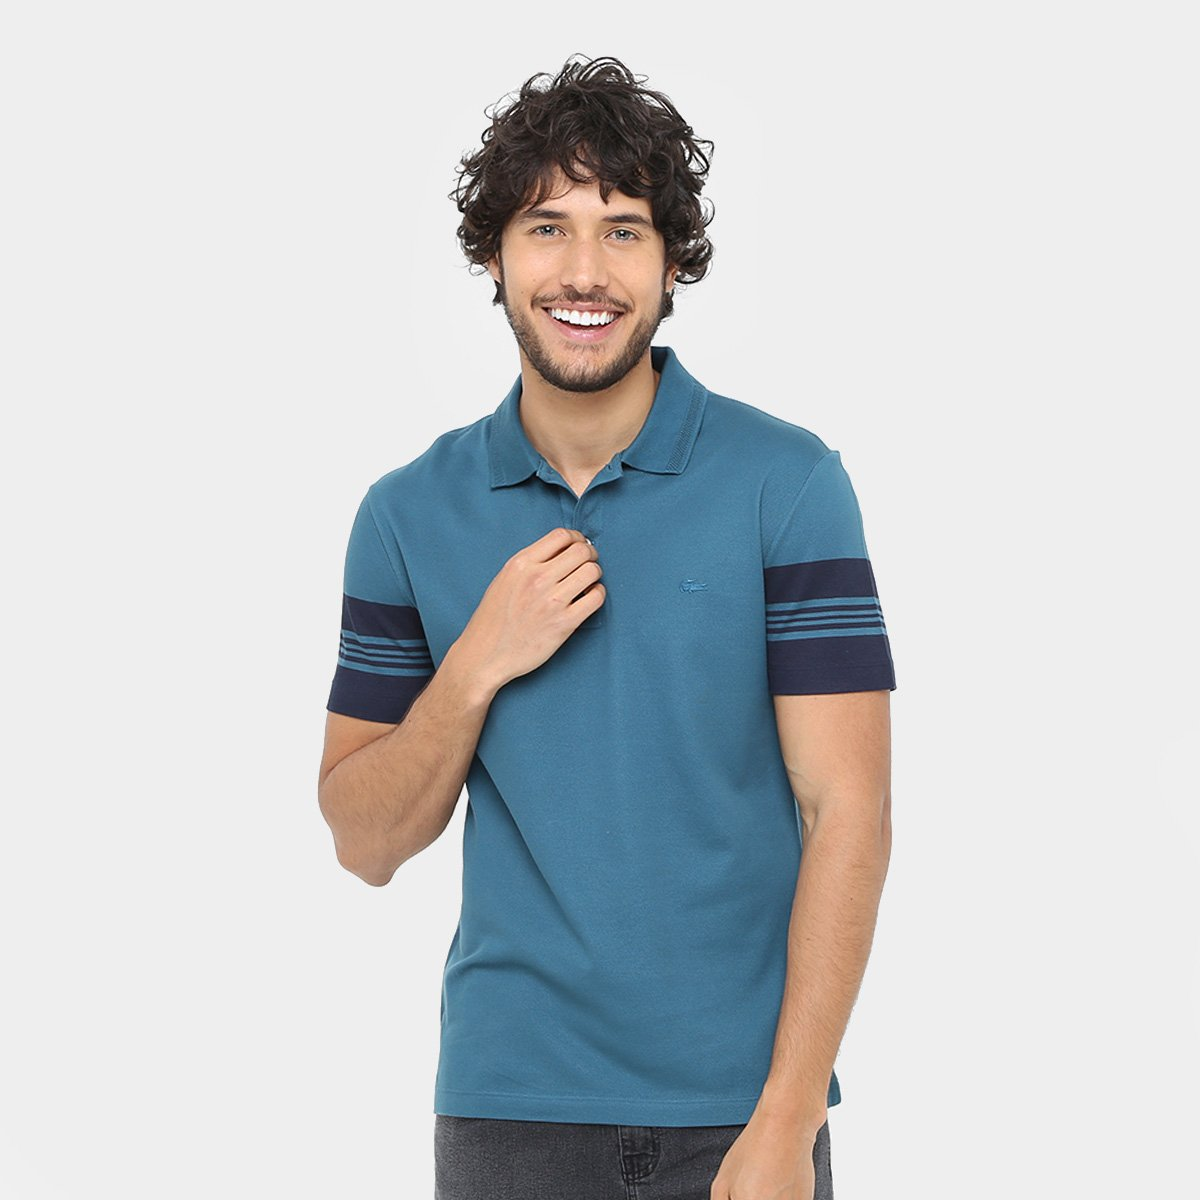 Camisa Polo Lacoste Piquet Fancy Slim Fit Masculina - Compre Agora ... fe3b5bf6ad54d